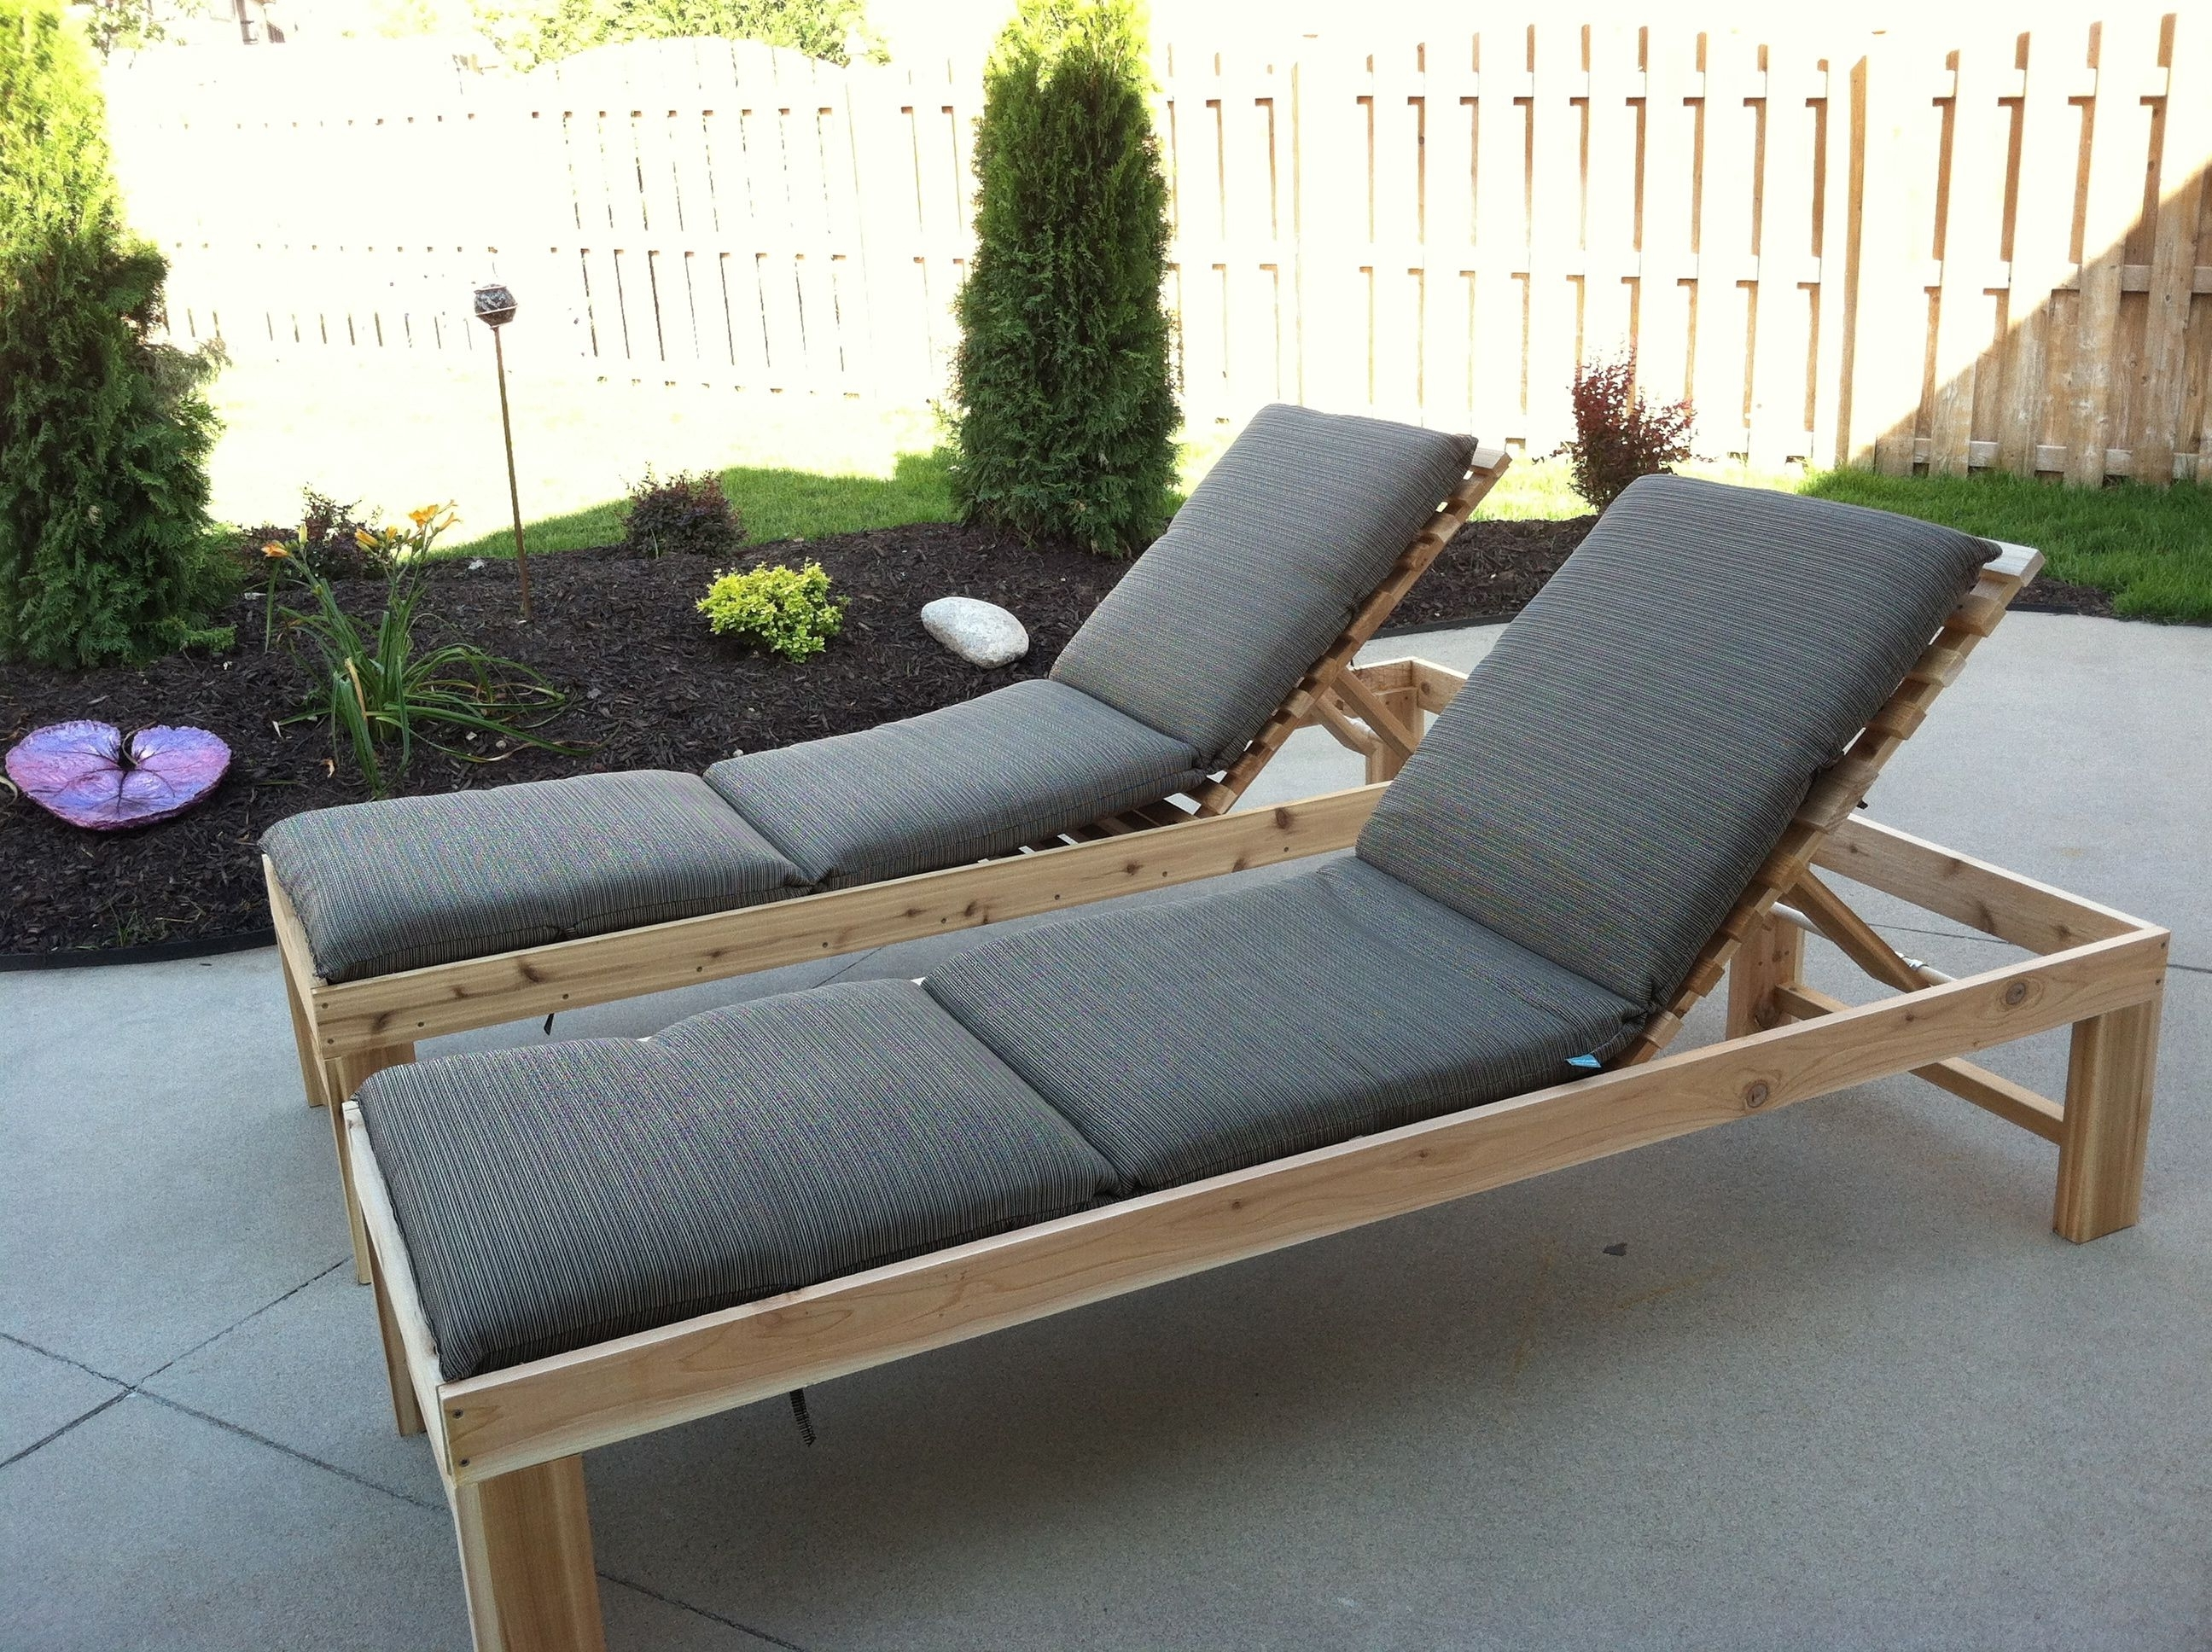 Outdoor Chaise Lounge With Ergonomic Seating Settings – Traba Homes In Latest Outdoor Lounge Chaises (View 8 of 15)